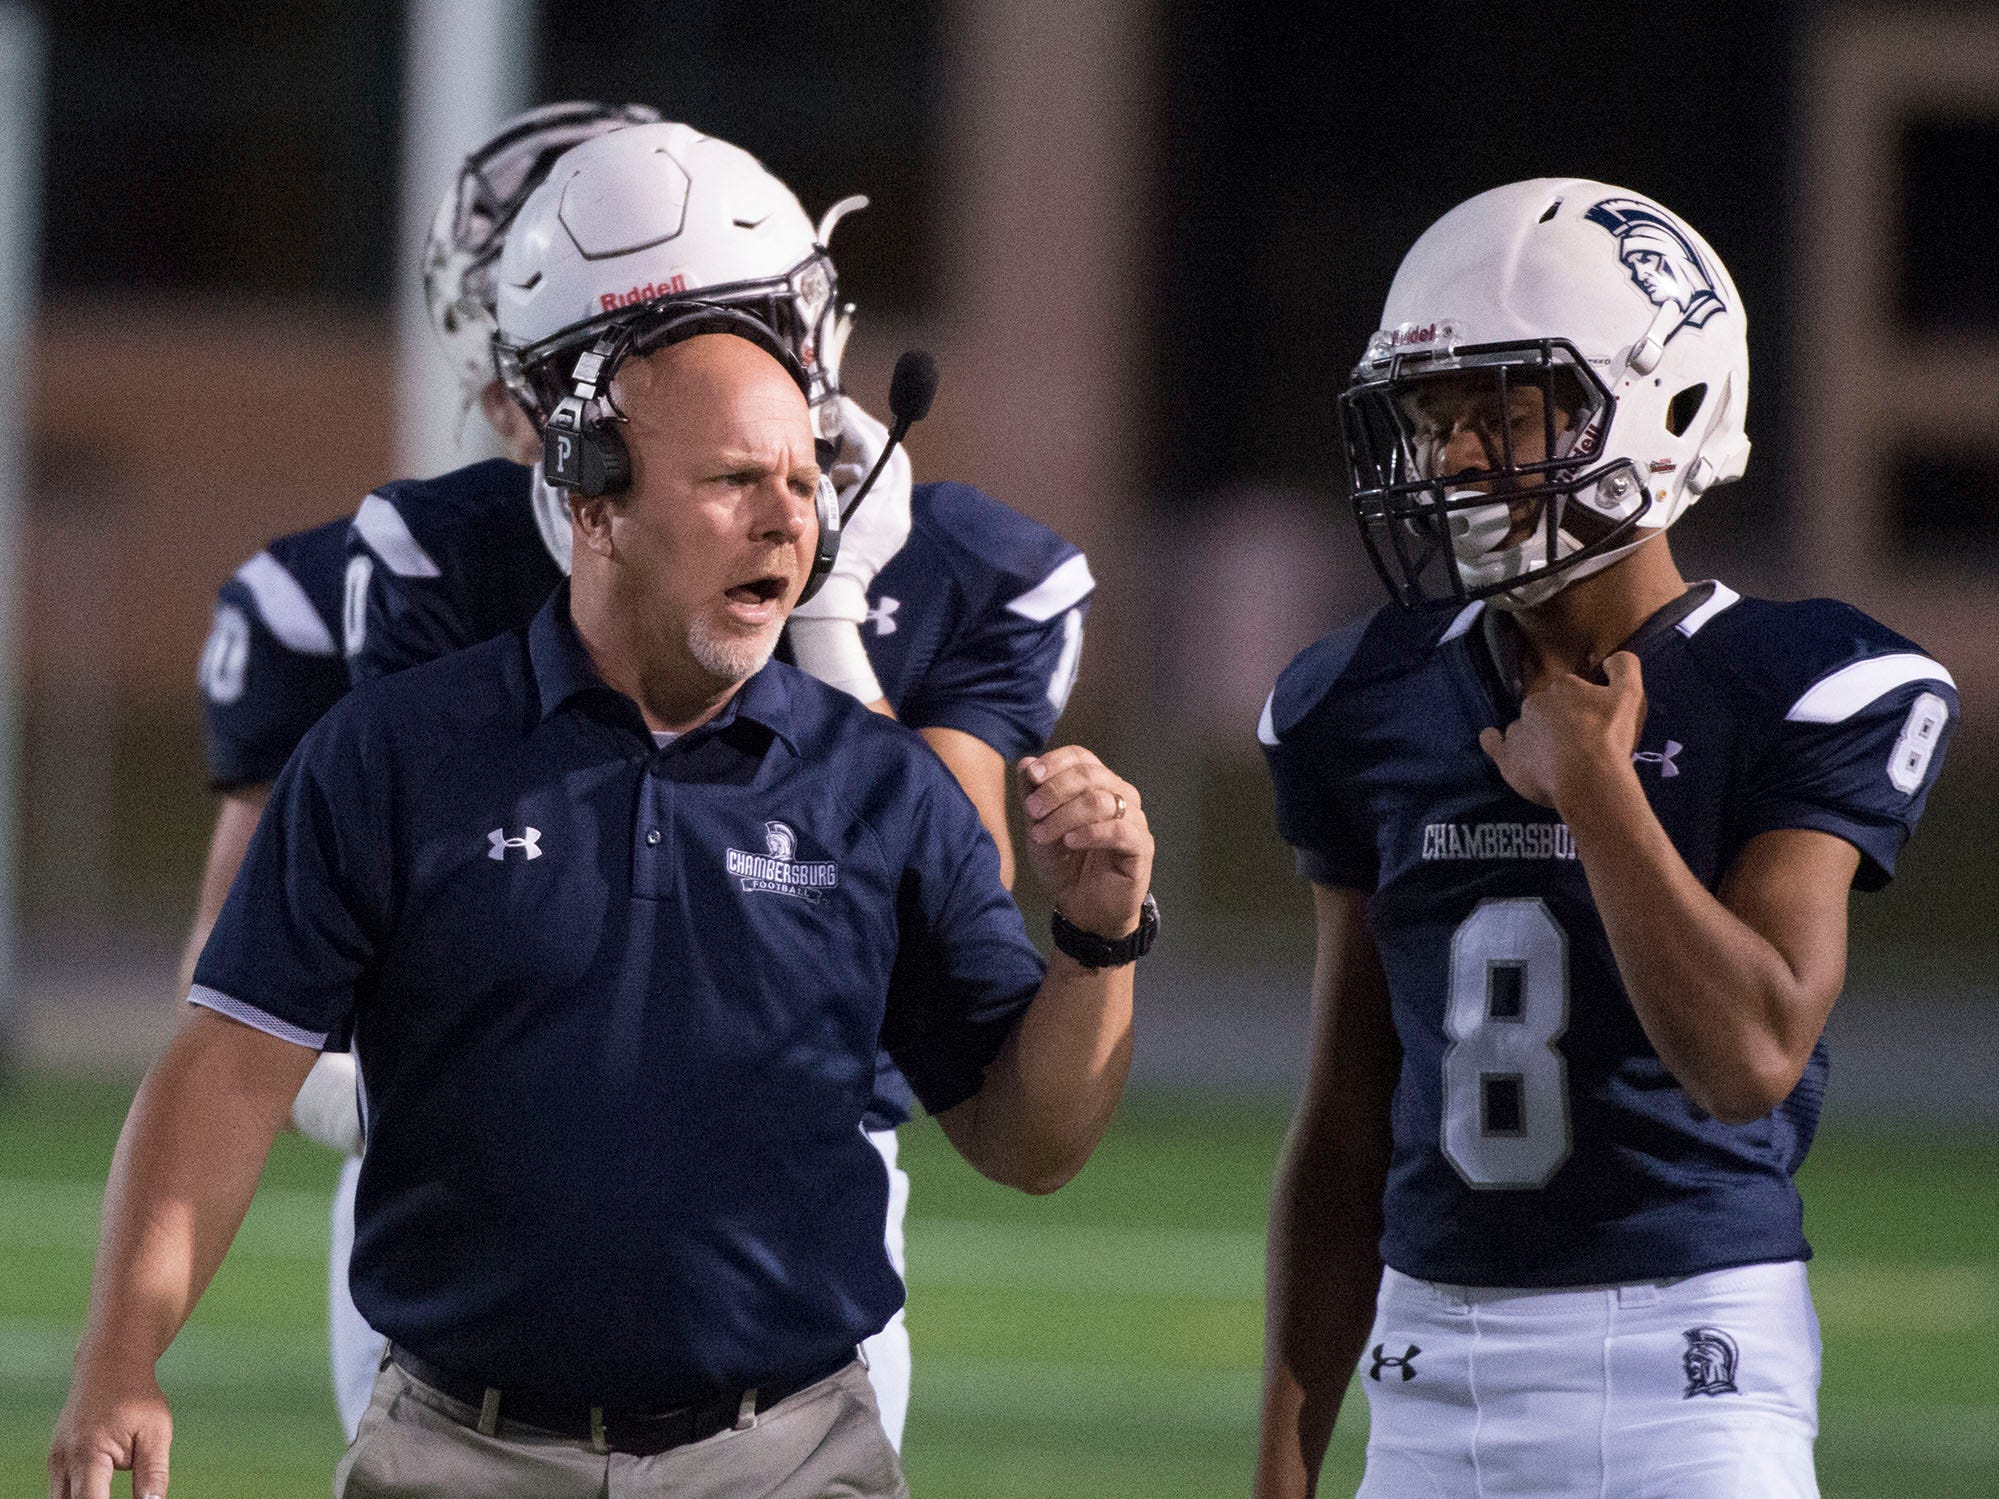 Chambersburg coach Mark Luther talks to player Karter Jones. Chambersburg Trojans are 5-1 after a homecoming victory over Cumberland Valley 28-14 in PIAA football on Friday, Sept. 28, 2018.